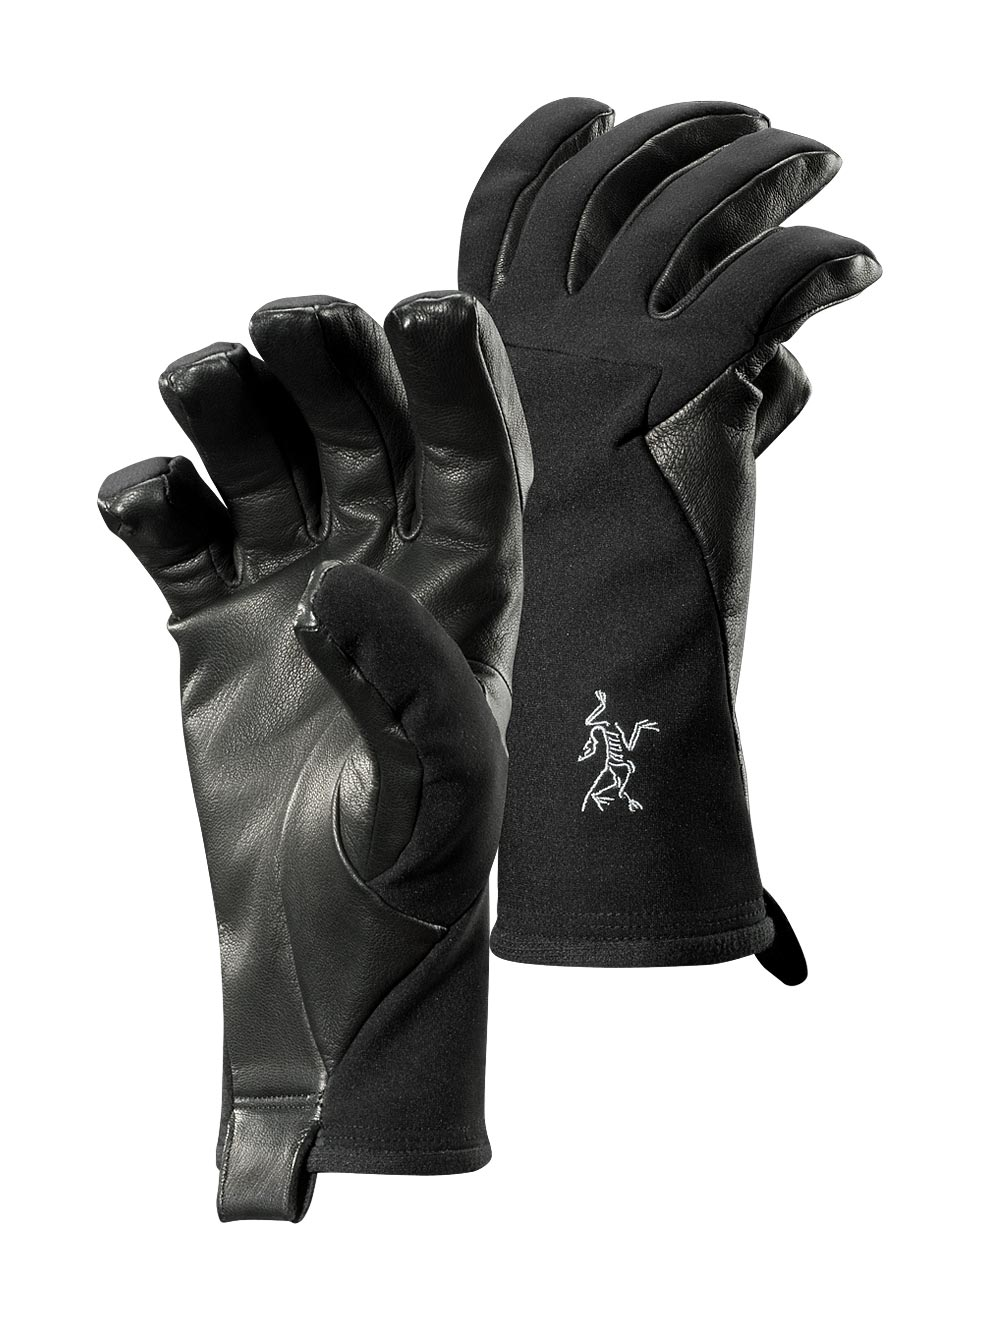 Full Collection Of Men S Arc Teryx Gloves Online Sale